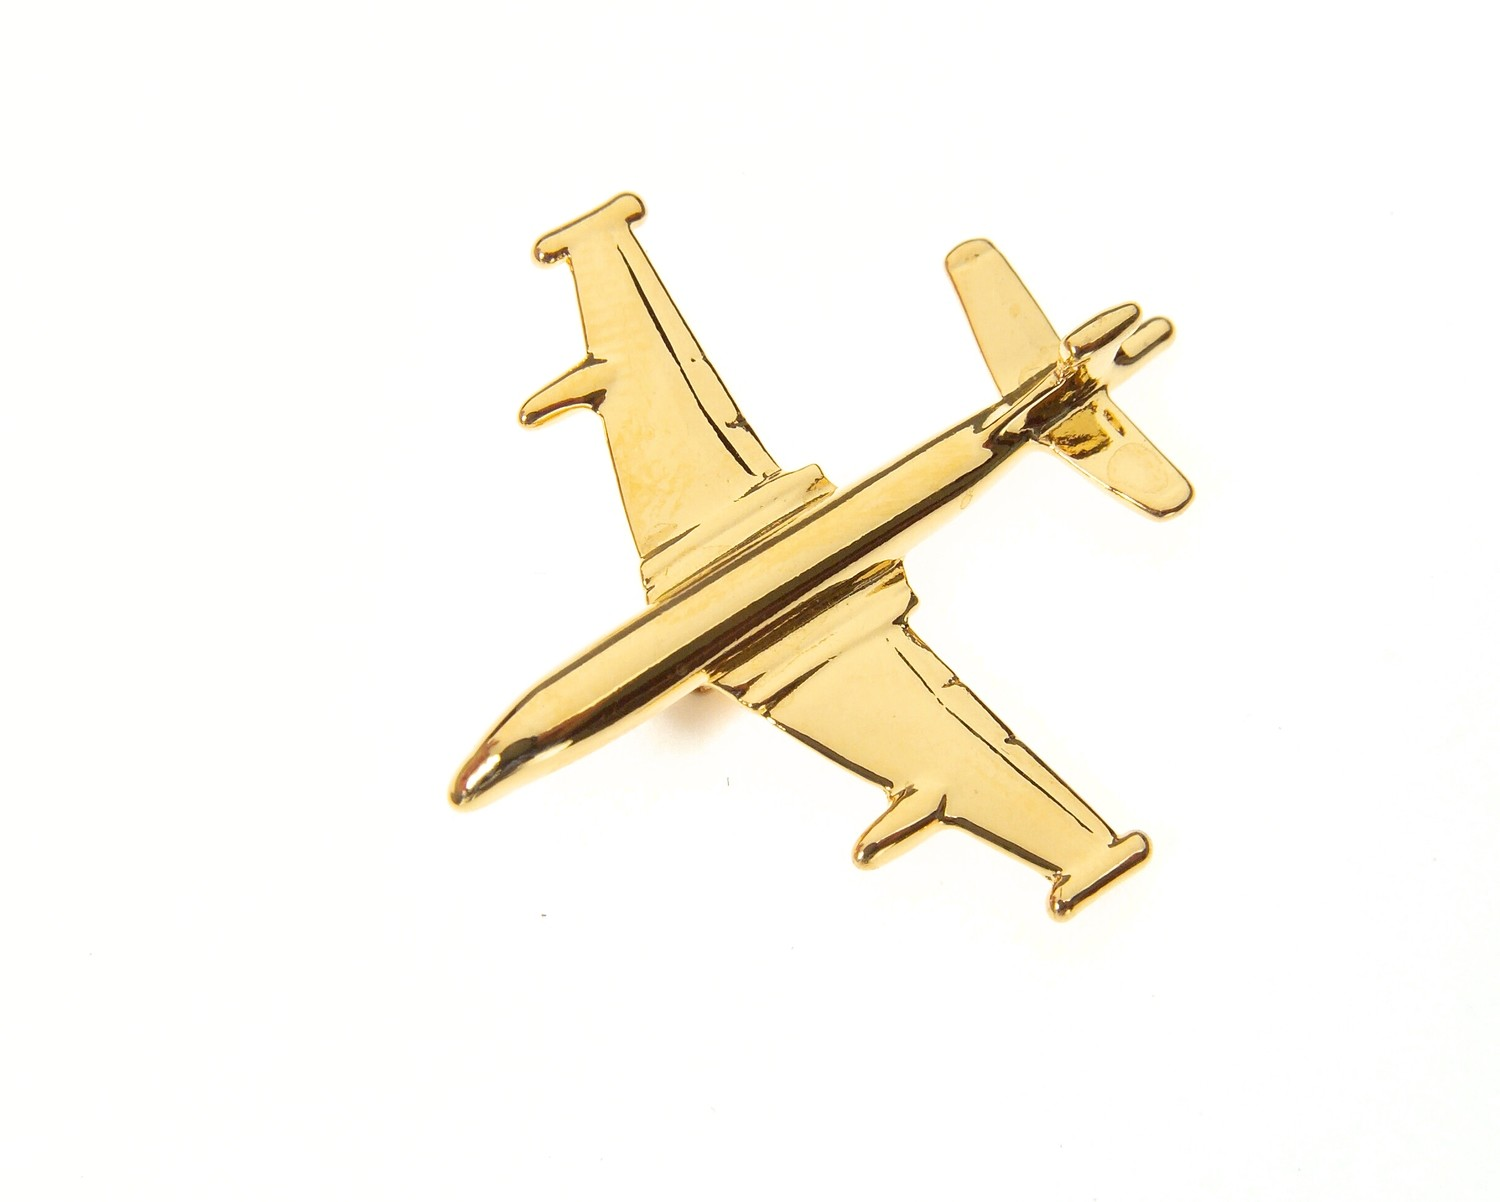 Nimrod Gold Plated Tie / Lapel Pin